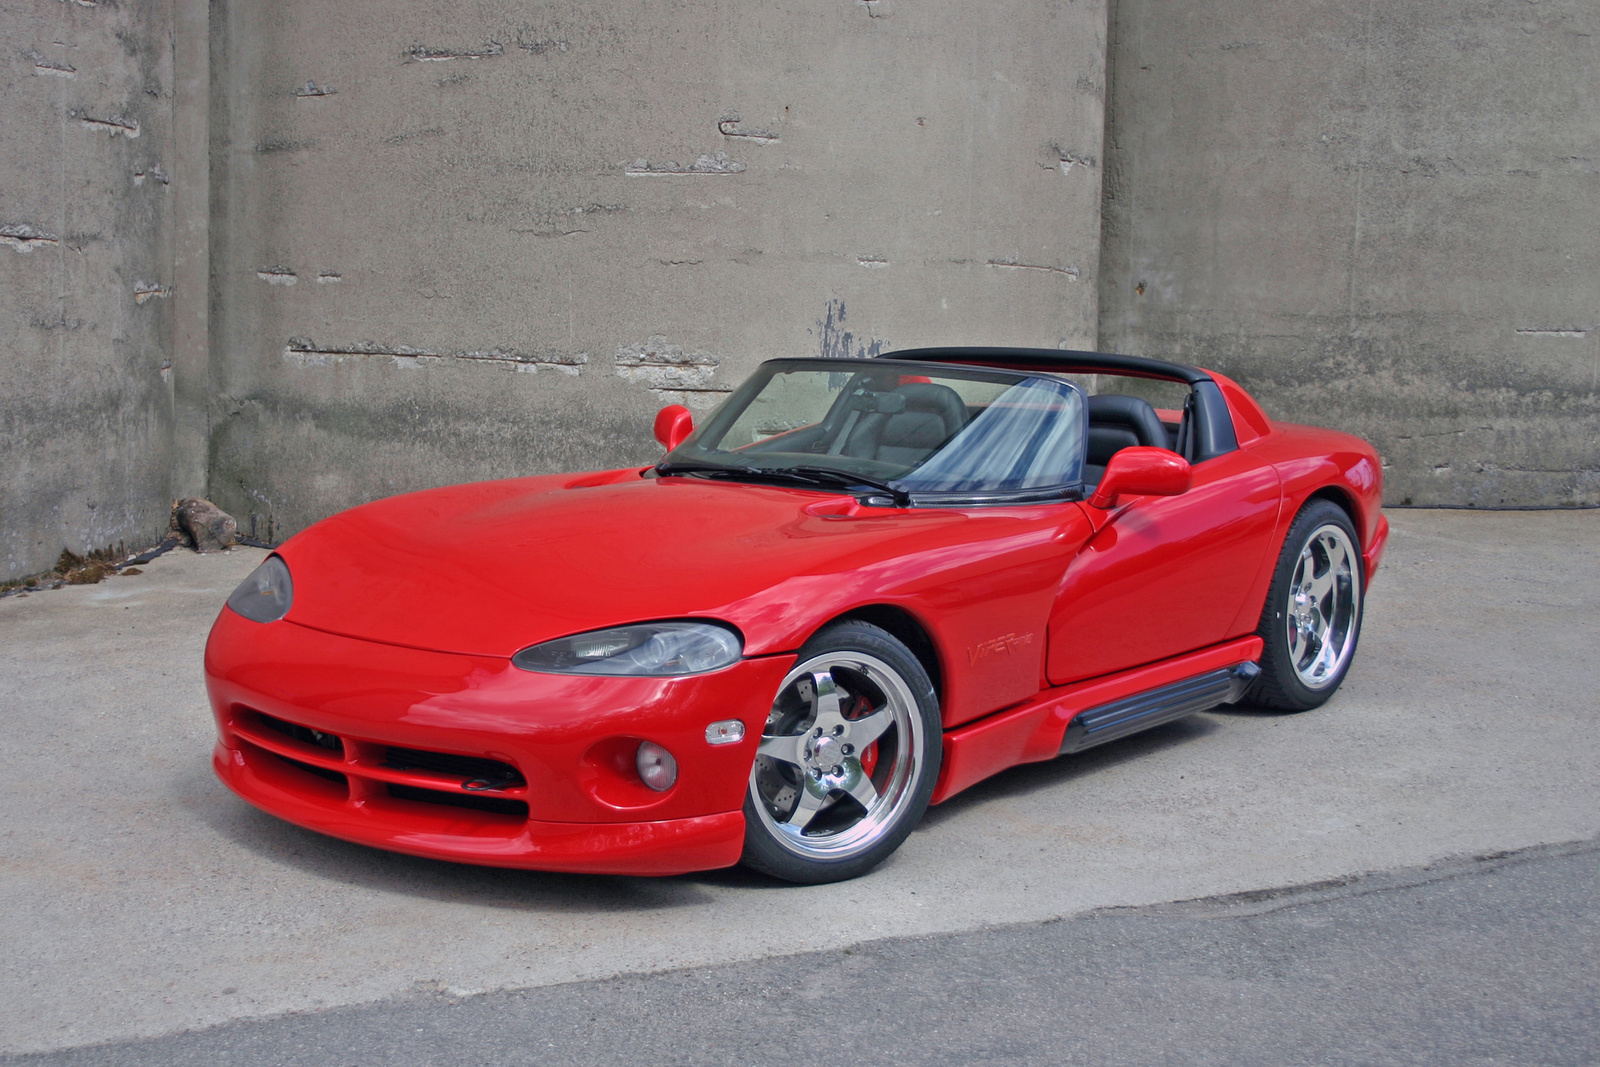 1994 Dodge Viper Pictures C1765 together with 1995 Dodge Viper Pictures C1754 pi36218744 moreover Chevrolet Silverado 5 3 2004 Specs And Images additionally 1991 Ford Mustang LX 5 further 1998 Chevrolet Monte Carlo Pictures C930. on chevrolet camaro 3 8 2002 2 specs and images